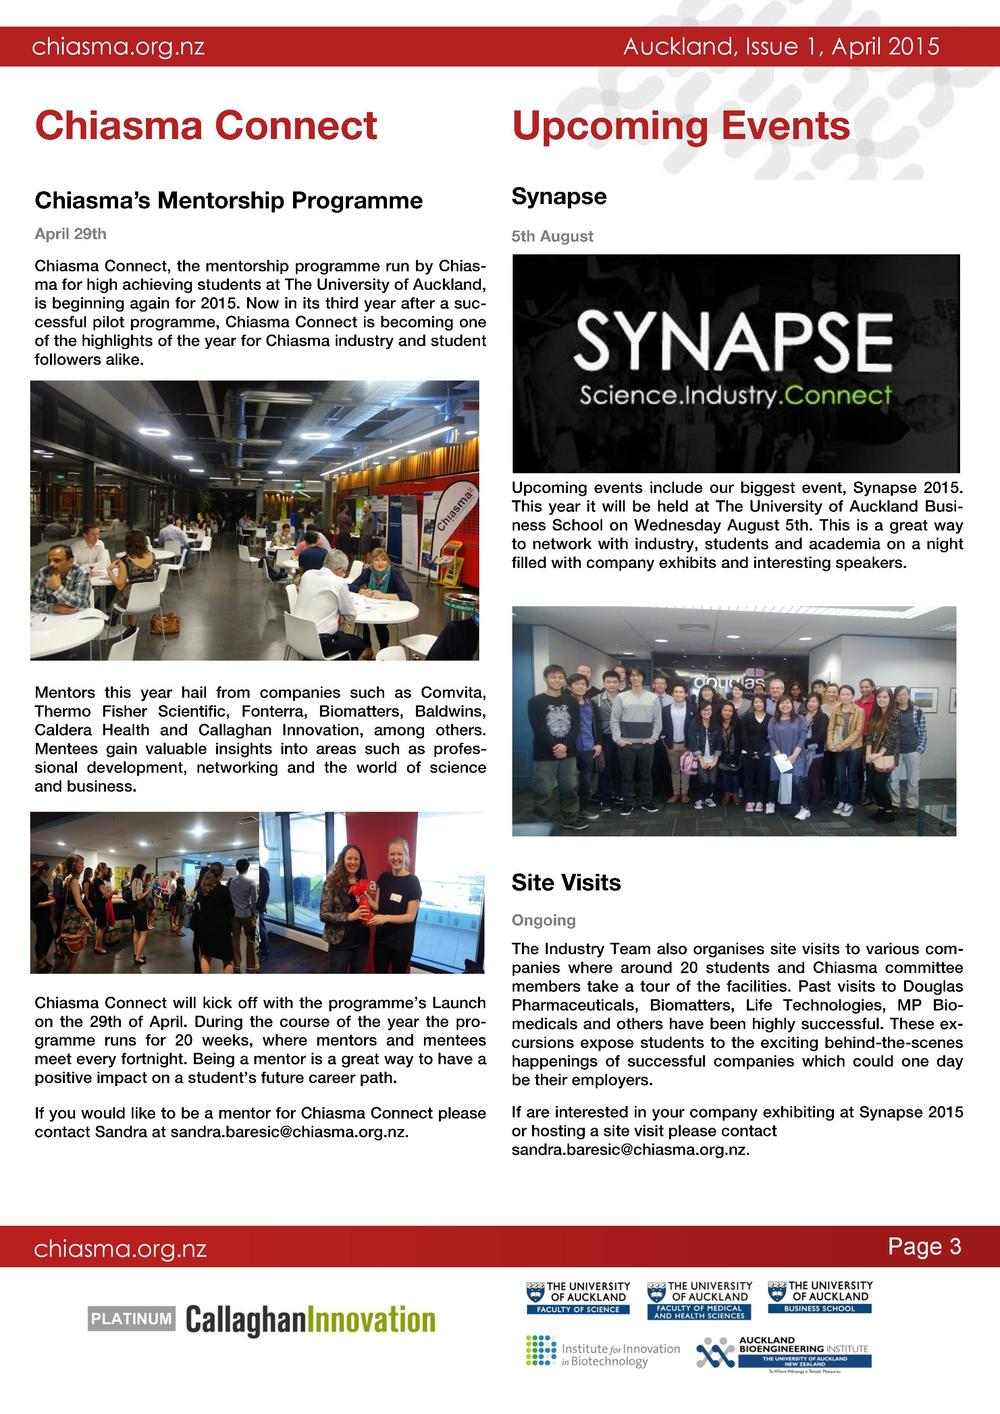 Industry_Newsletter_01_2015-page-003.jpg